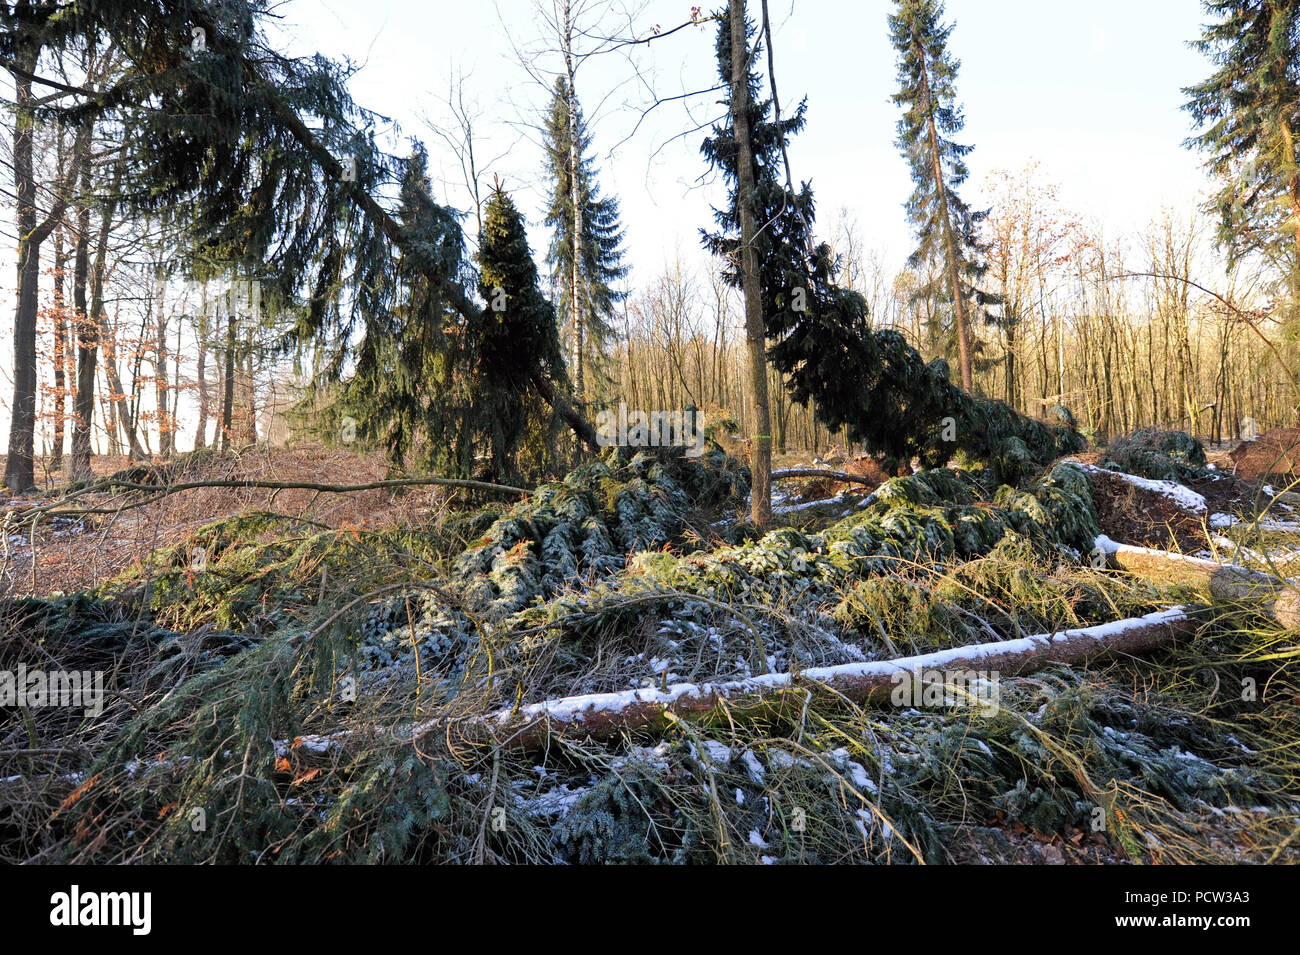 Sturm 'Friederike' swept over Saxony at the end of January 2018 in hurricane force and left heavy damage in the forests of Saxony by fallen trees - Stock Image